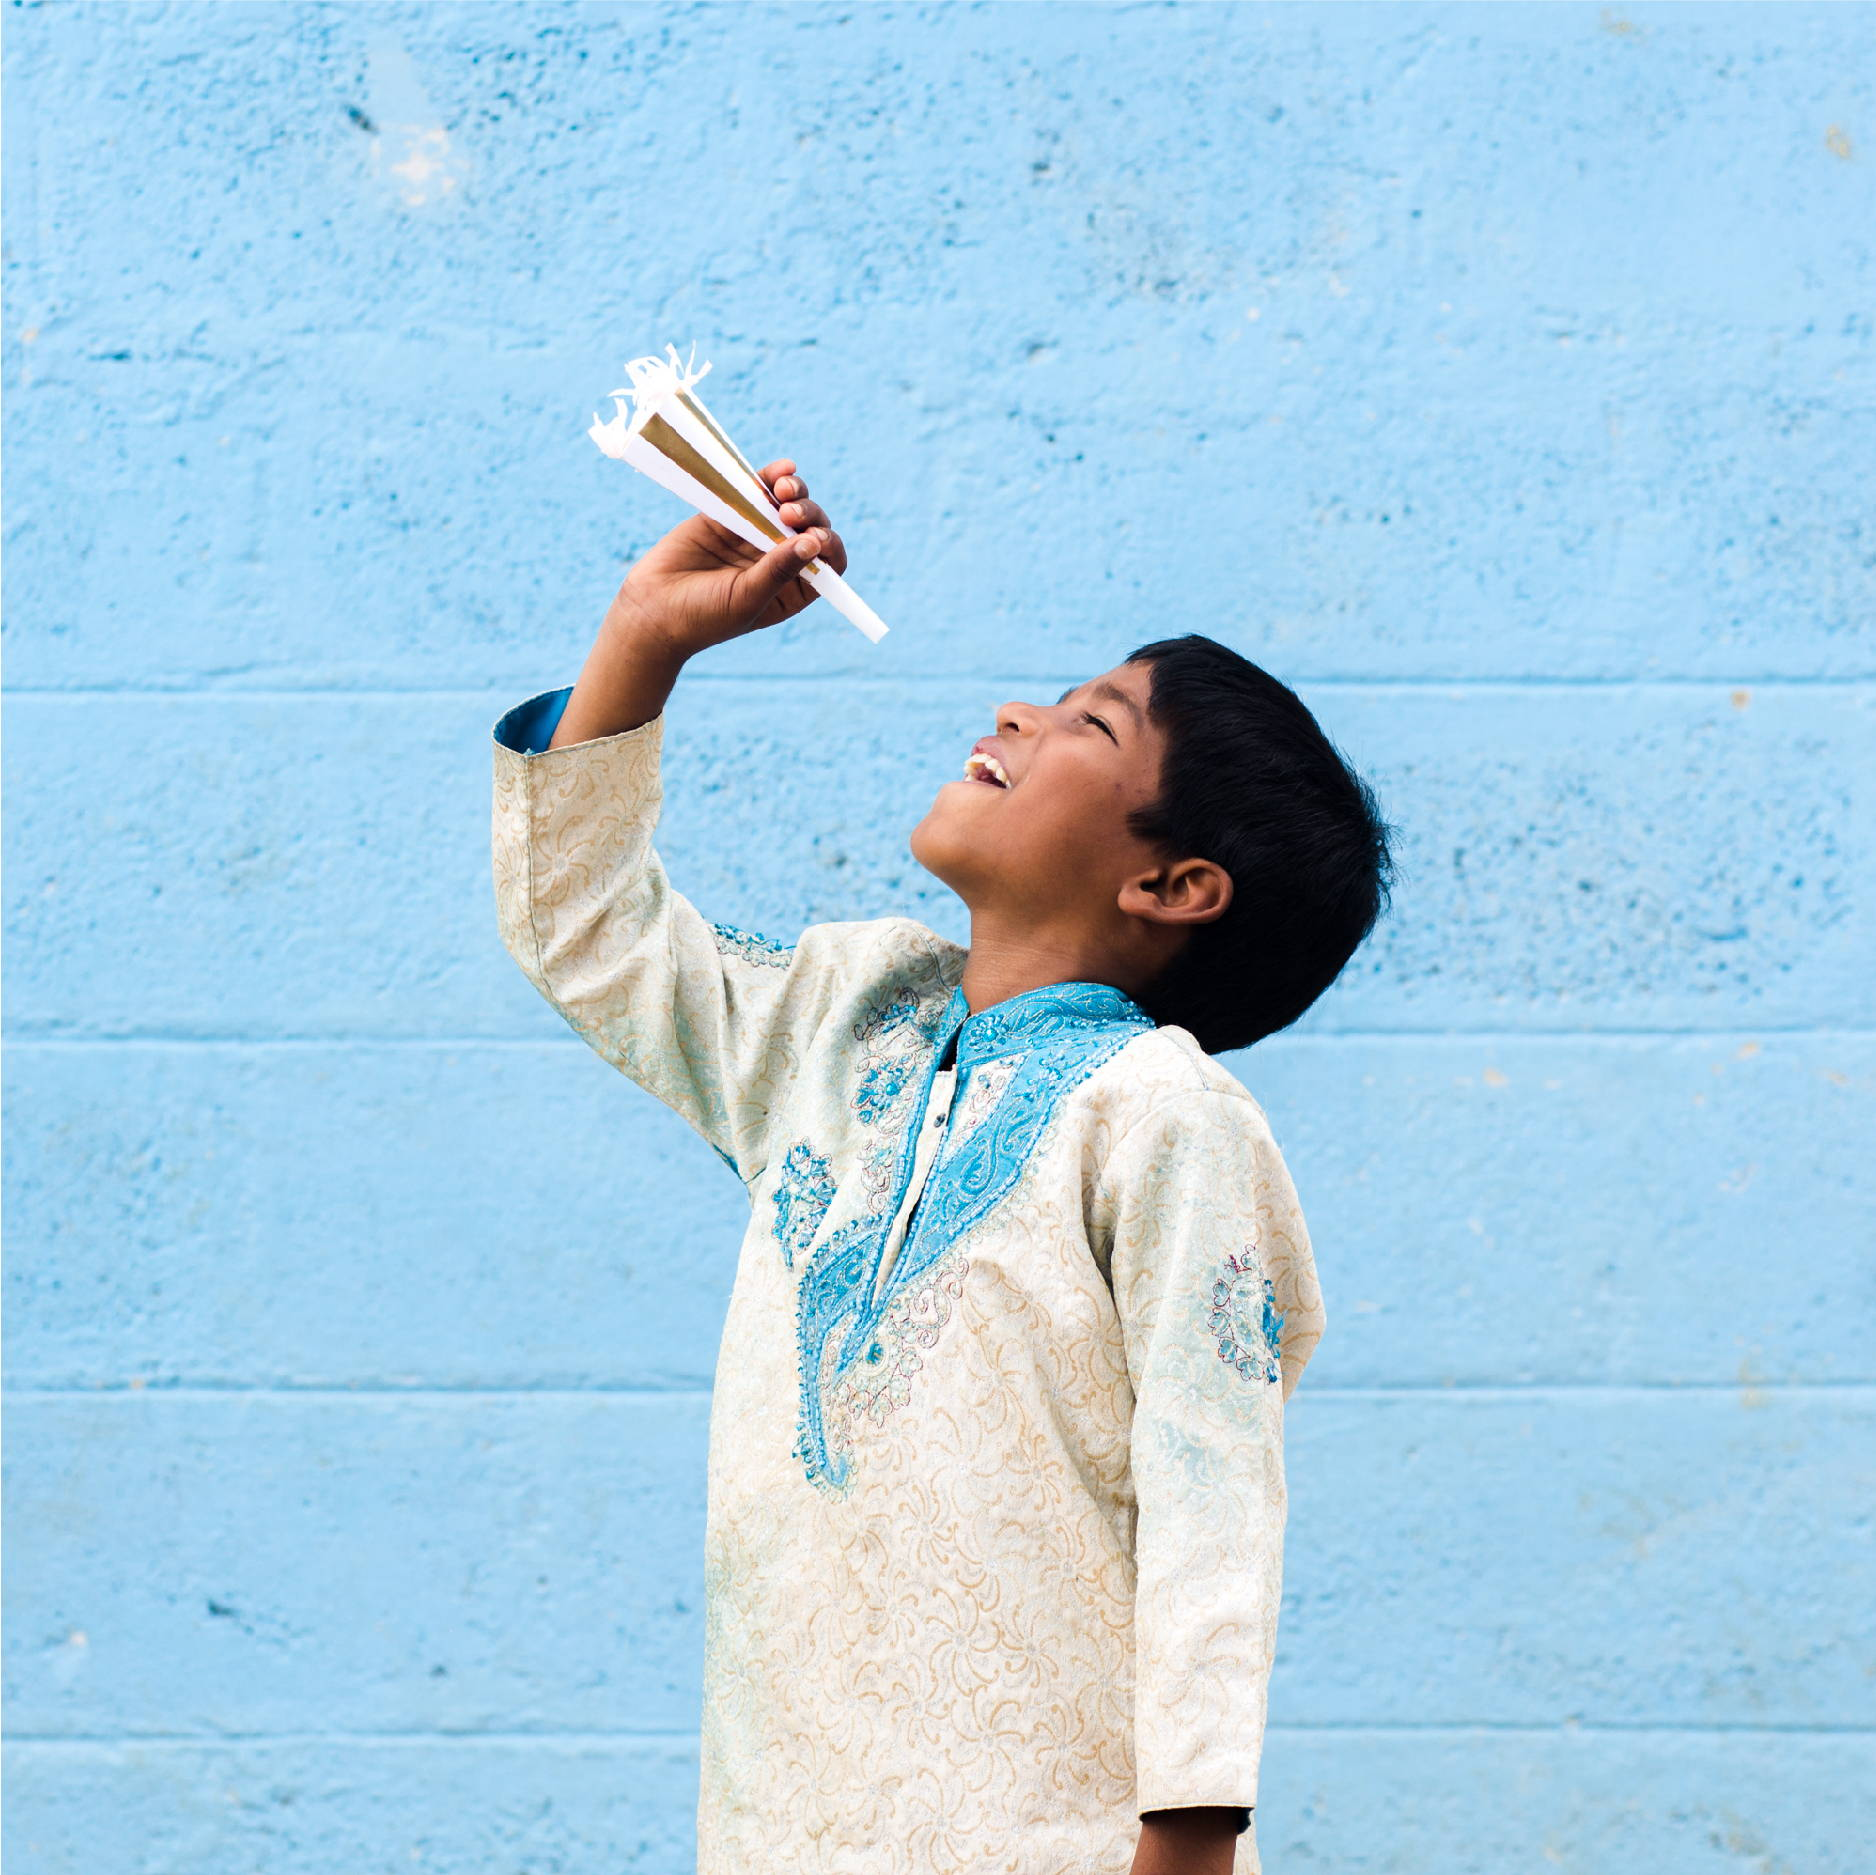 An Indian boy wearing traditional Indian clothing poses with a party horn in front of a blue wall with the look of pure joy